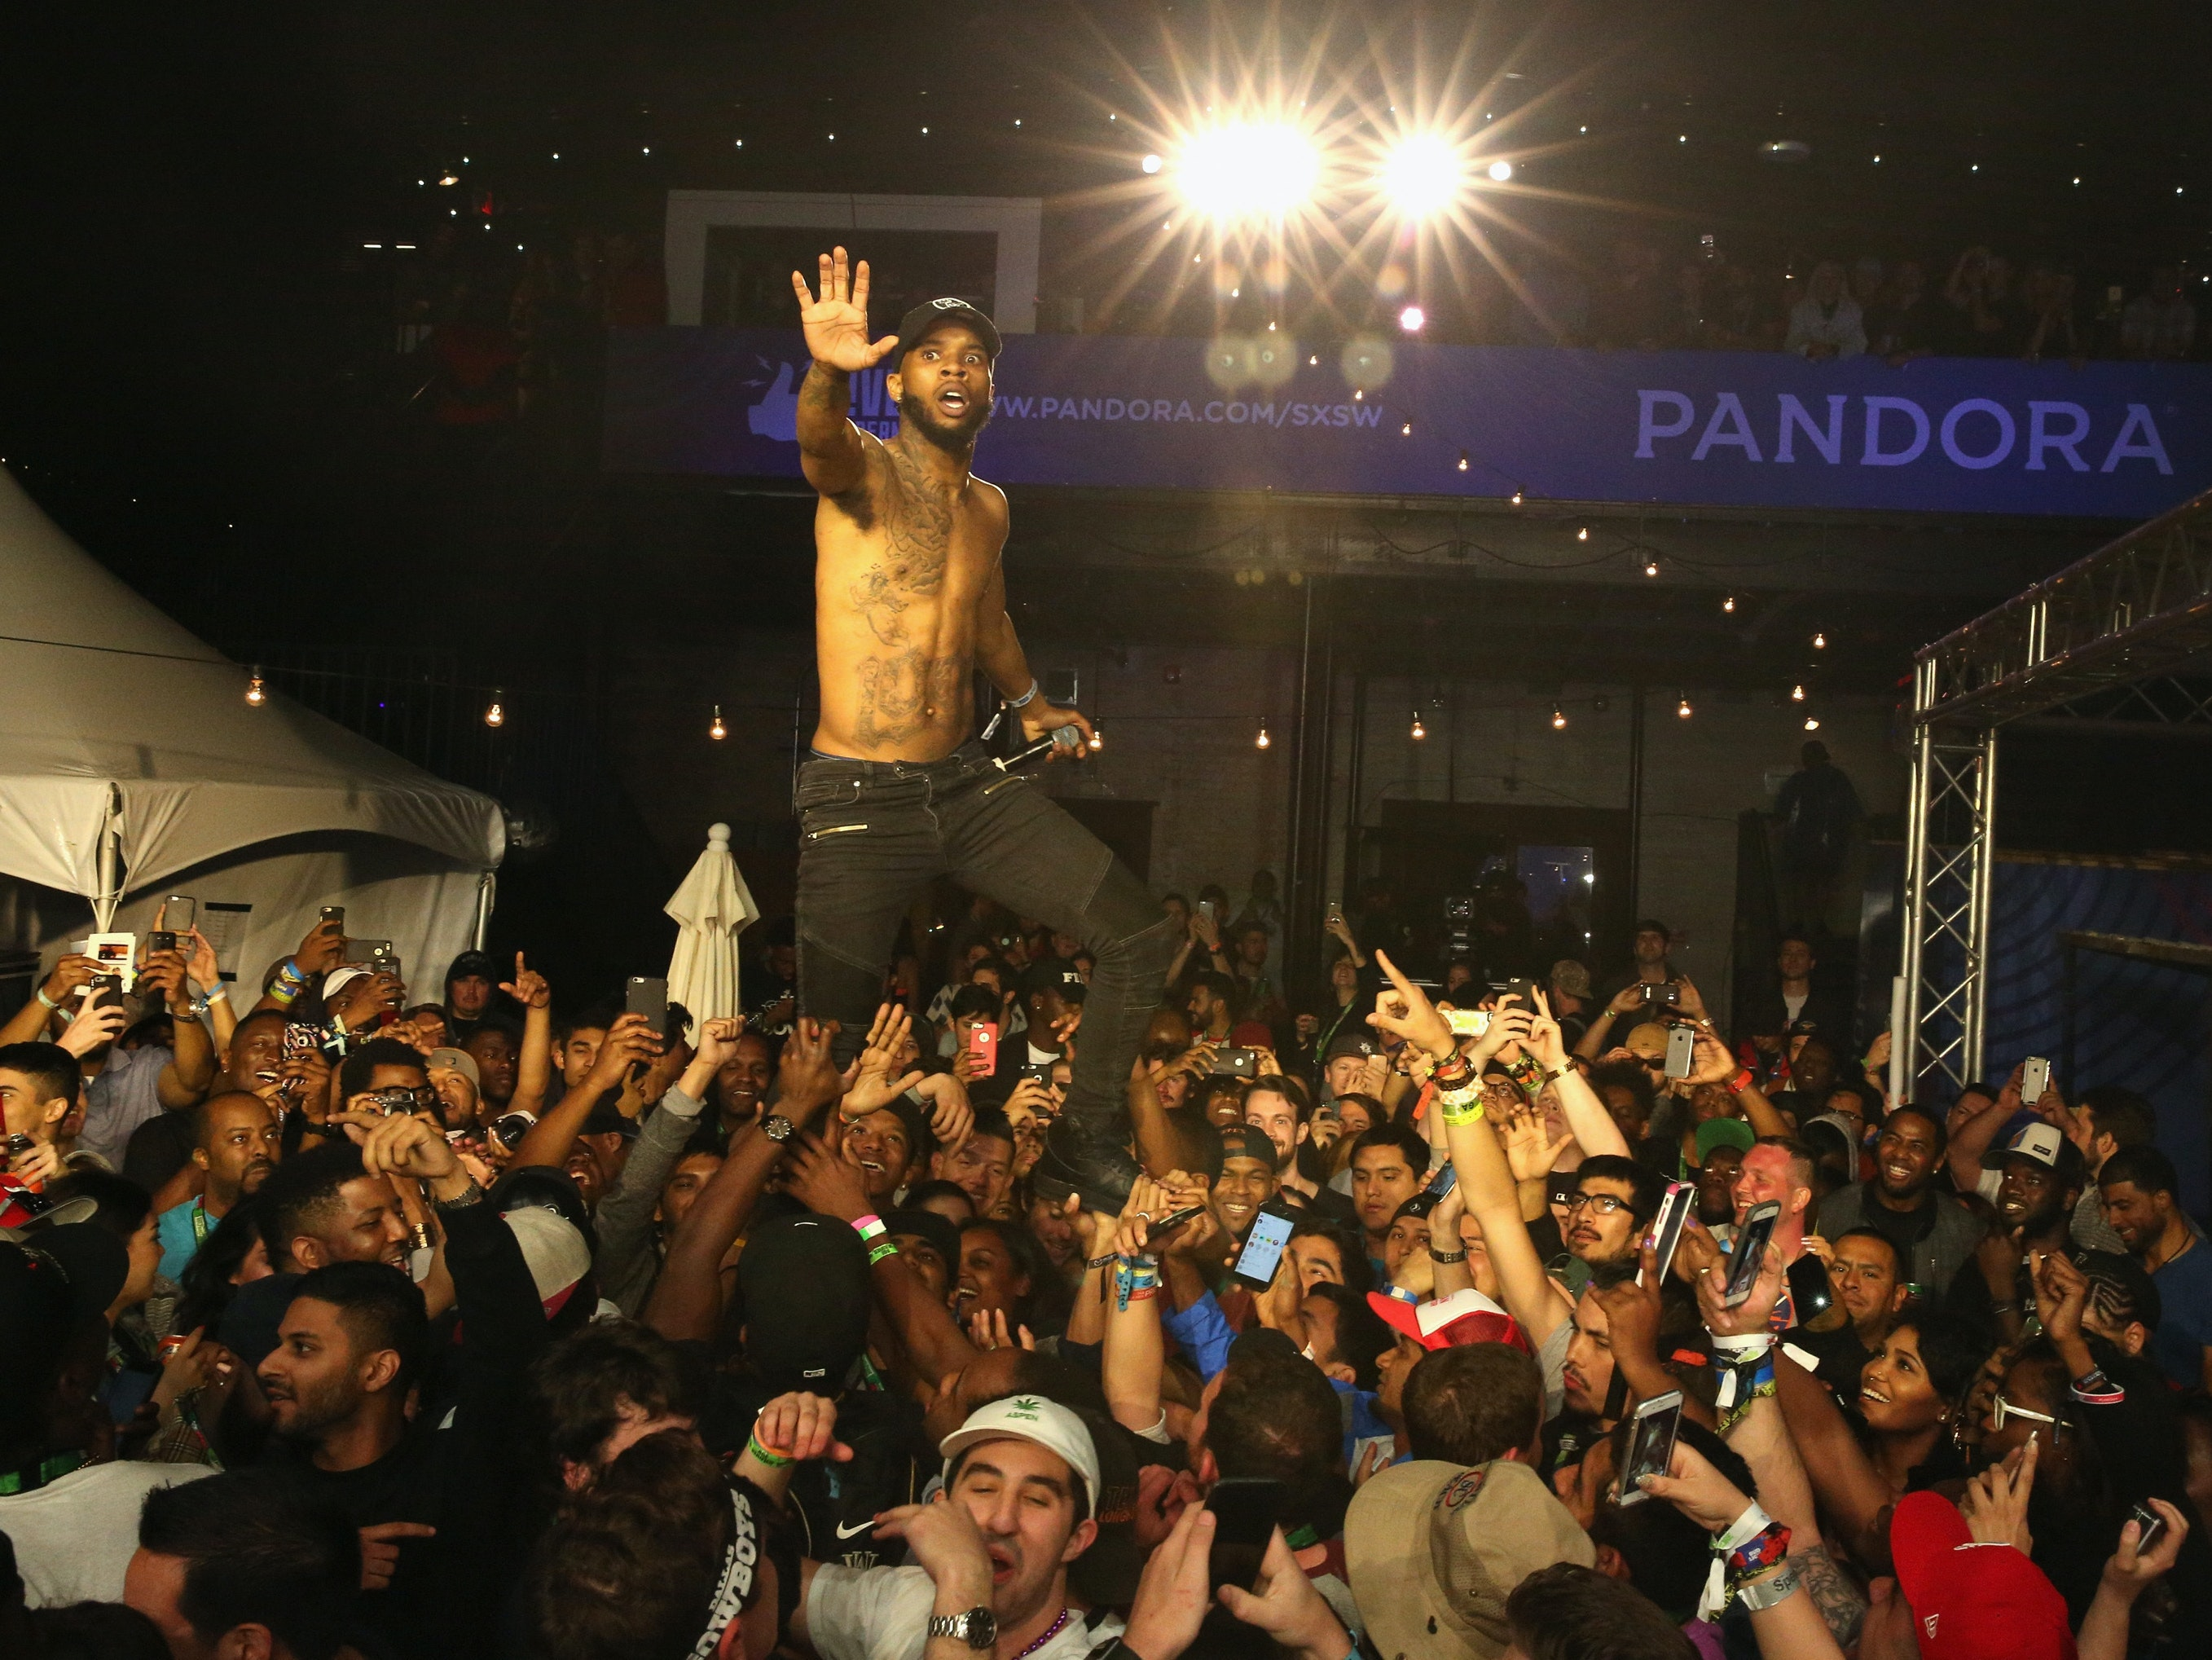 AUSTIN, TX - MARCH 18:  Rapper Tory Lanez performs onstage during the PANDORA Discovery Den SXSW on March 18, 2016 in Austin, Texas.  (Photo by Rachel Murray/Getty Images for Pandora)